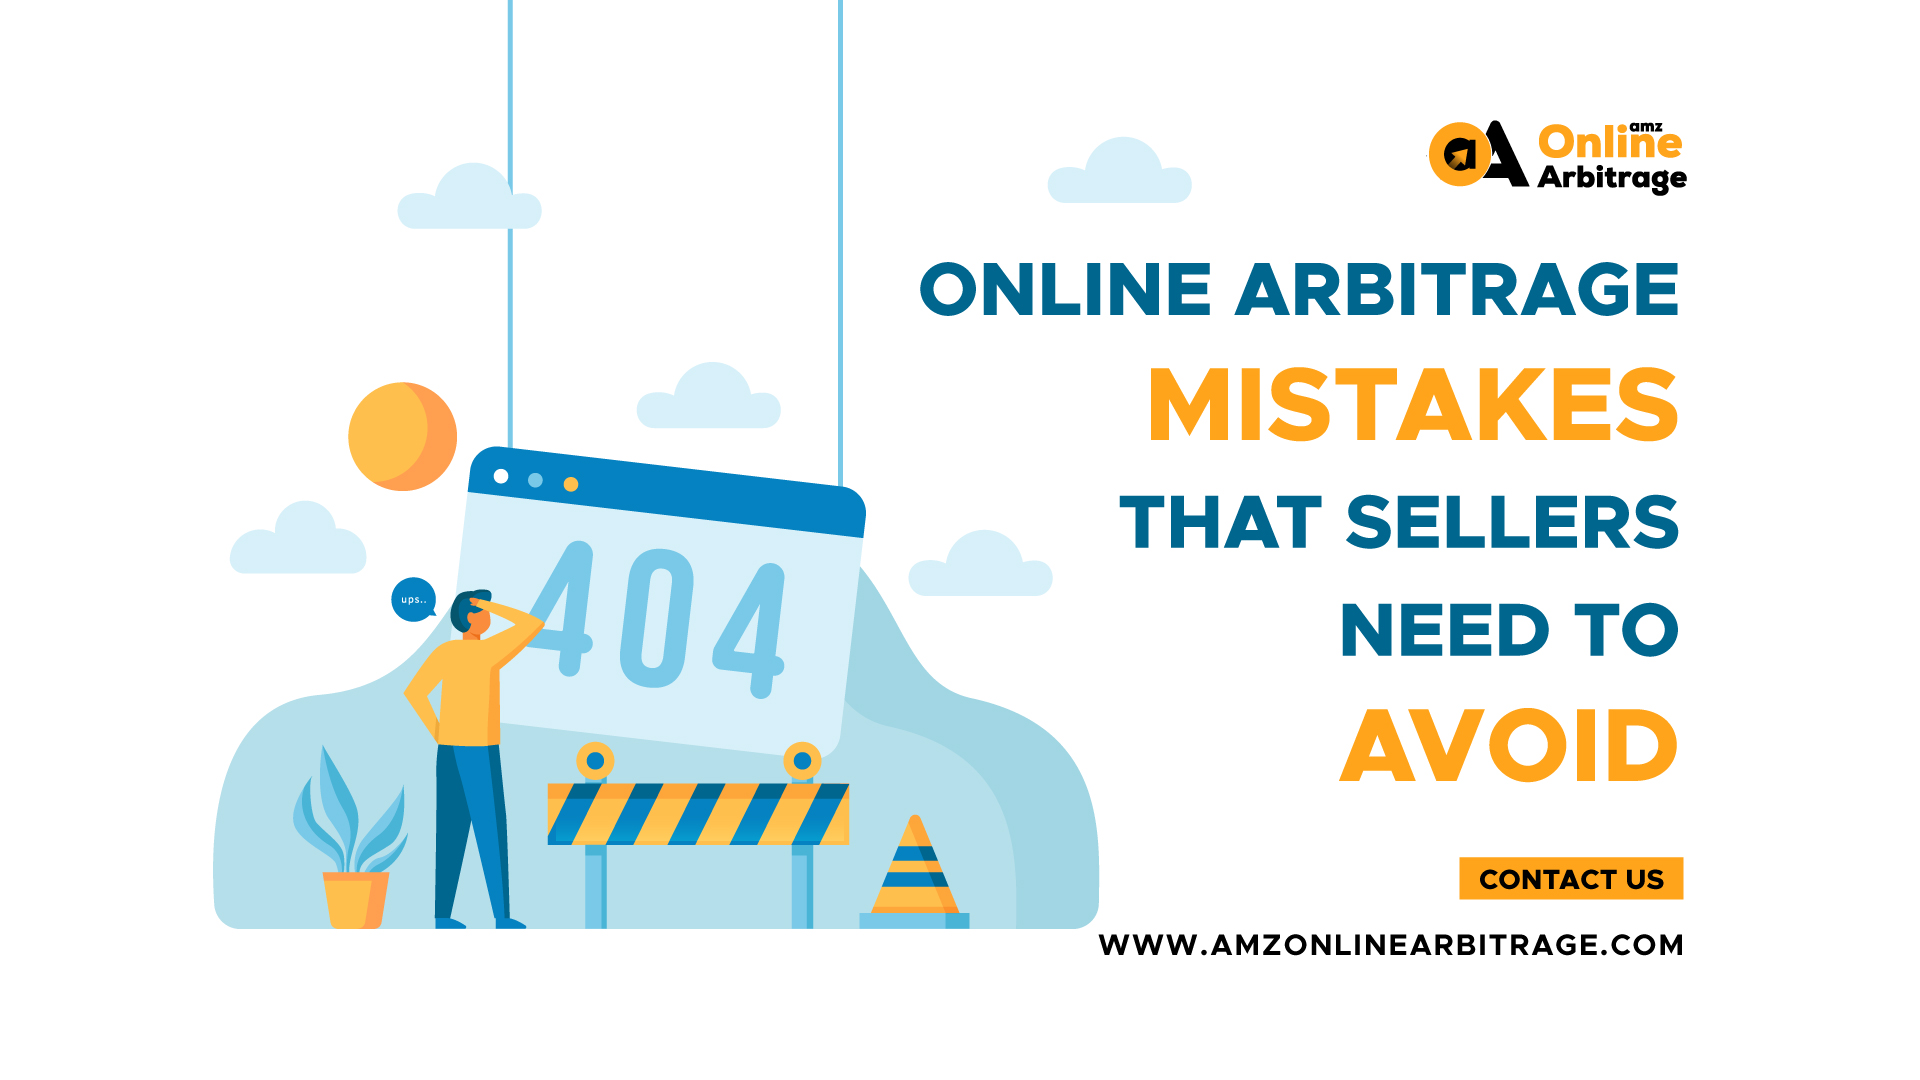 ONLINE ARBITRAGE MISTAKES THAT SELLERS NEED TO AVOID